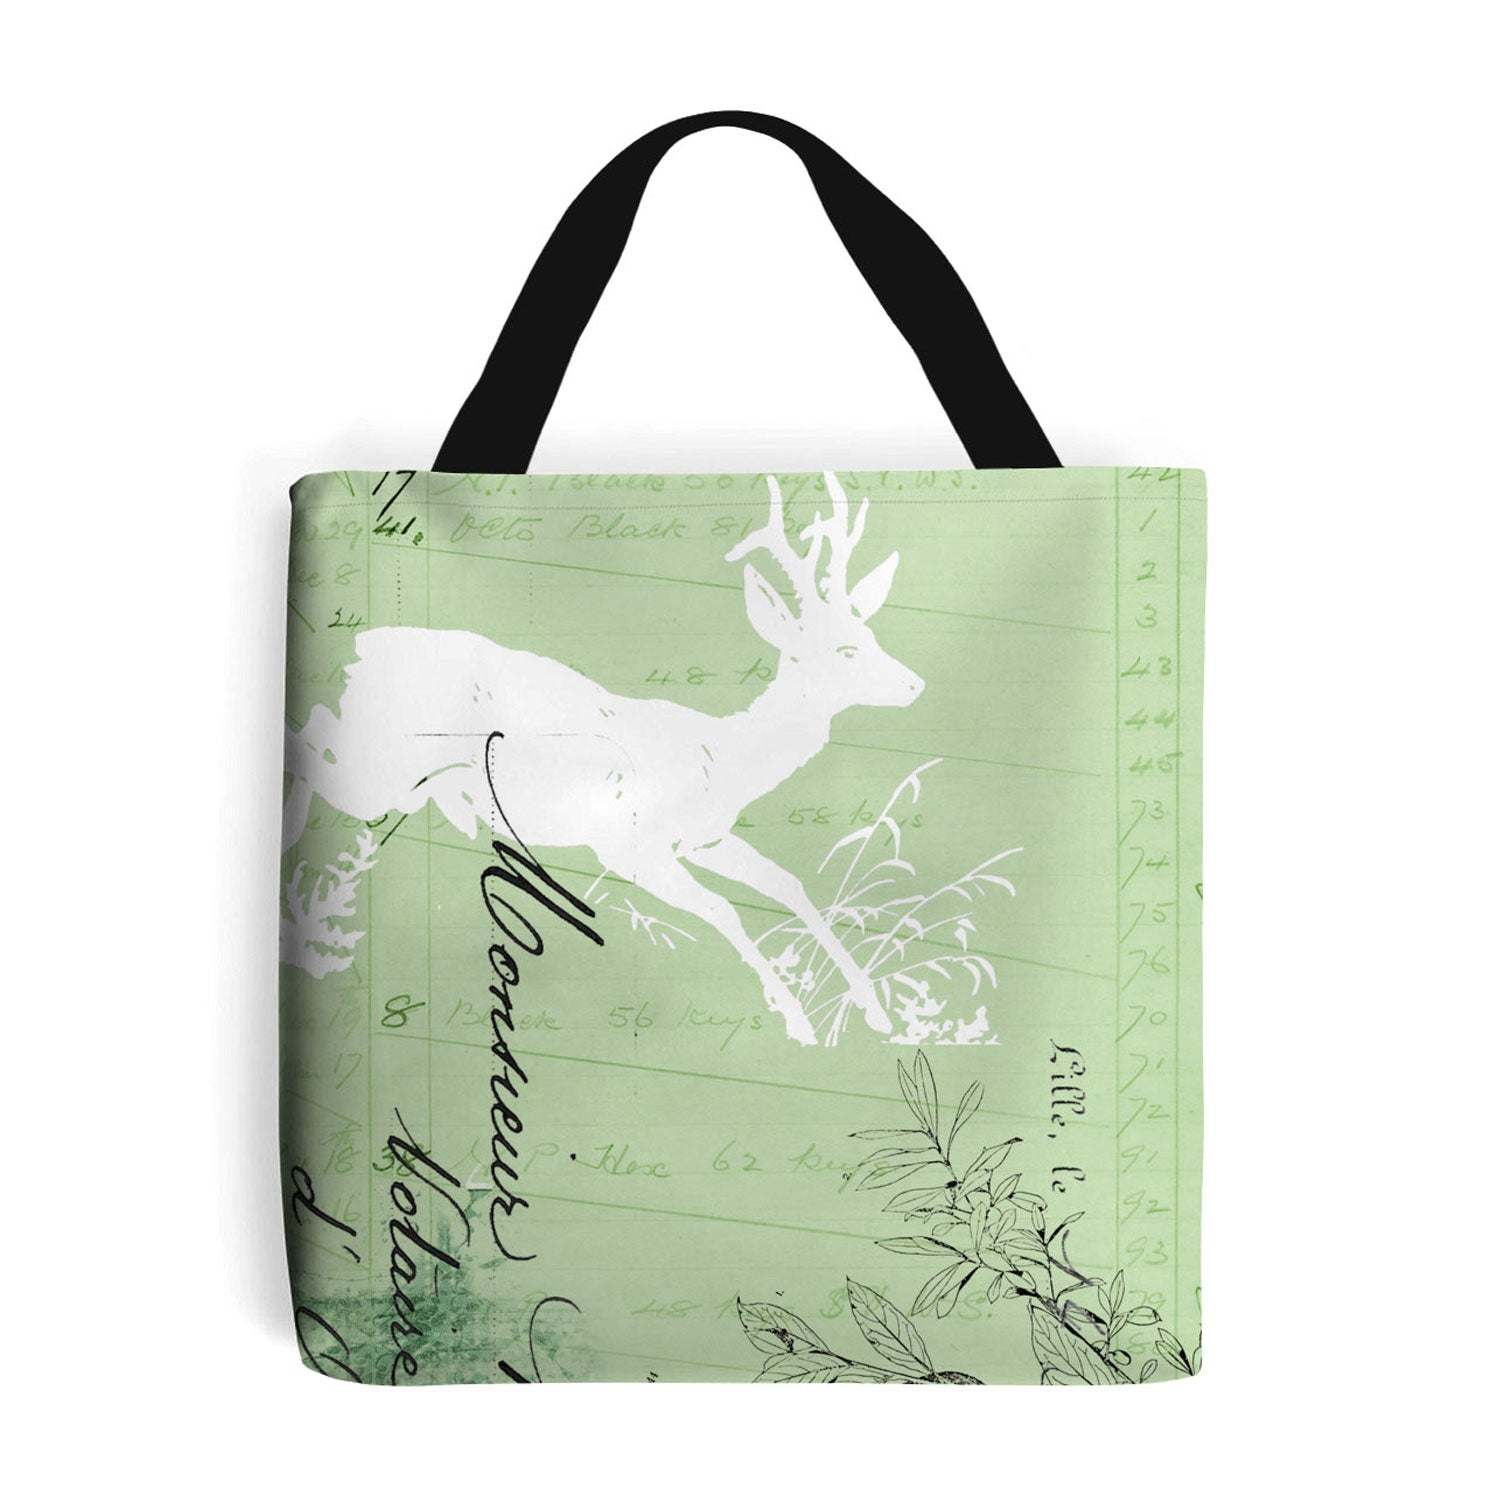 green shopping bag with deer collage design